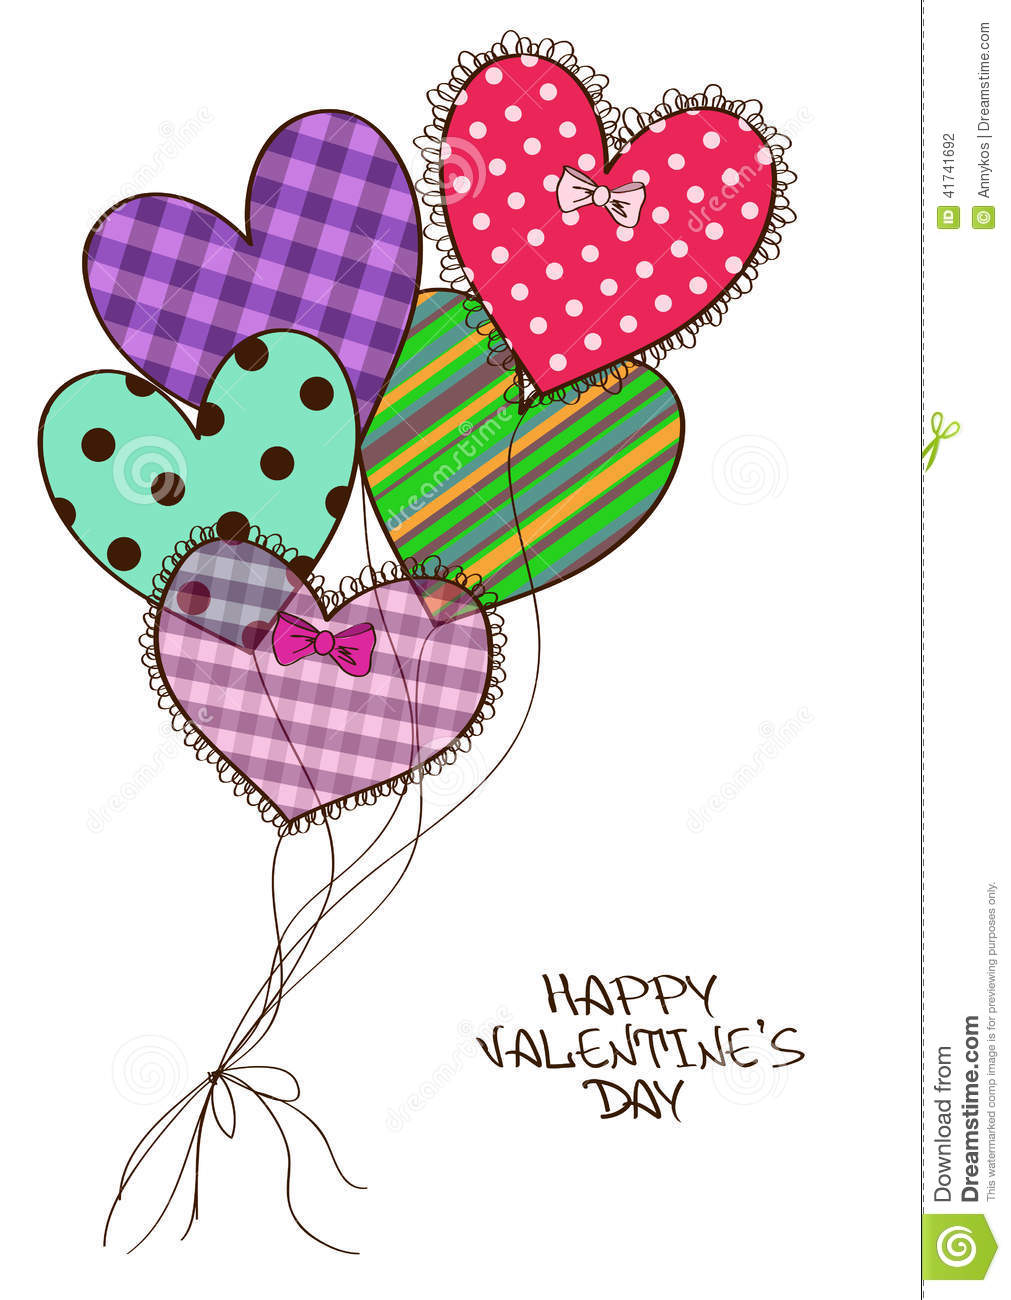 Card with scrap booking heart air balloons